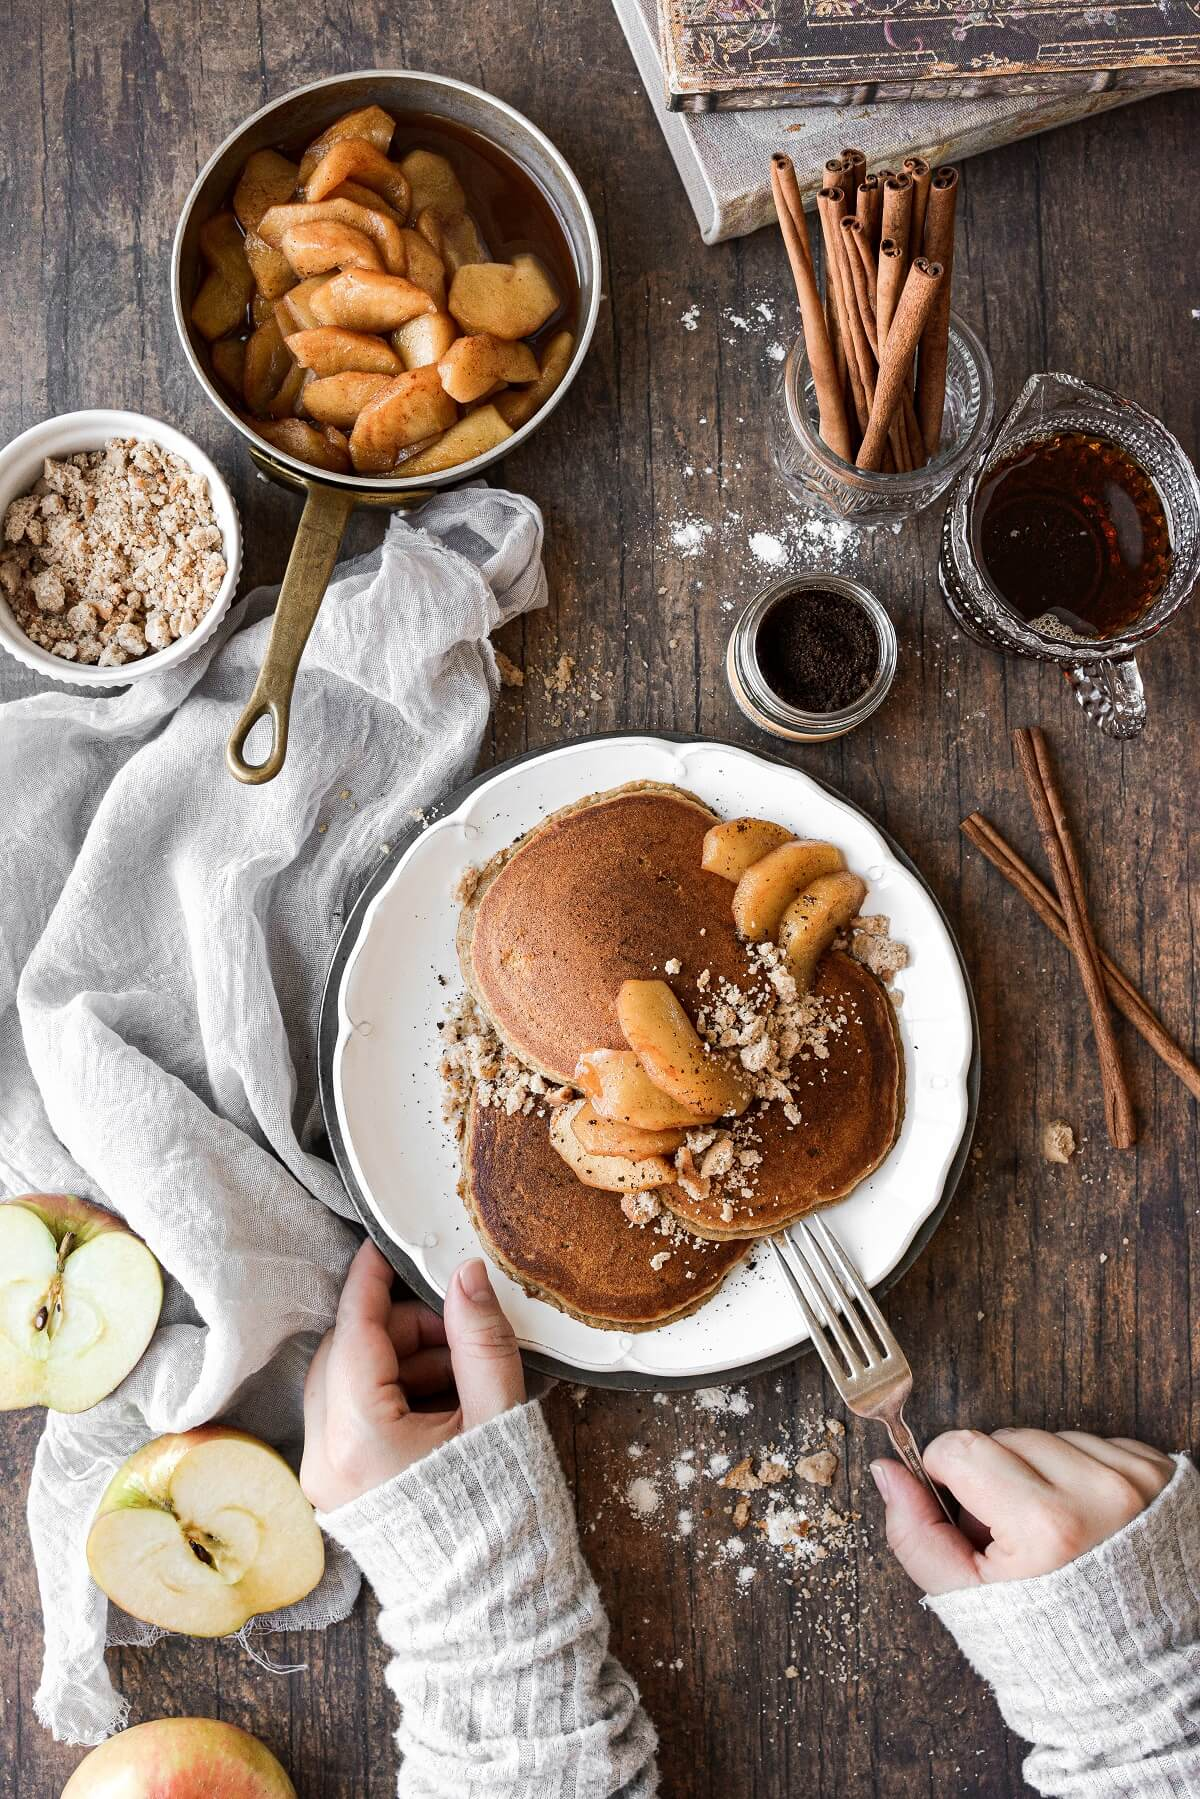 A plate of apple cider pancakes in a cozy fall scene.